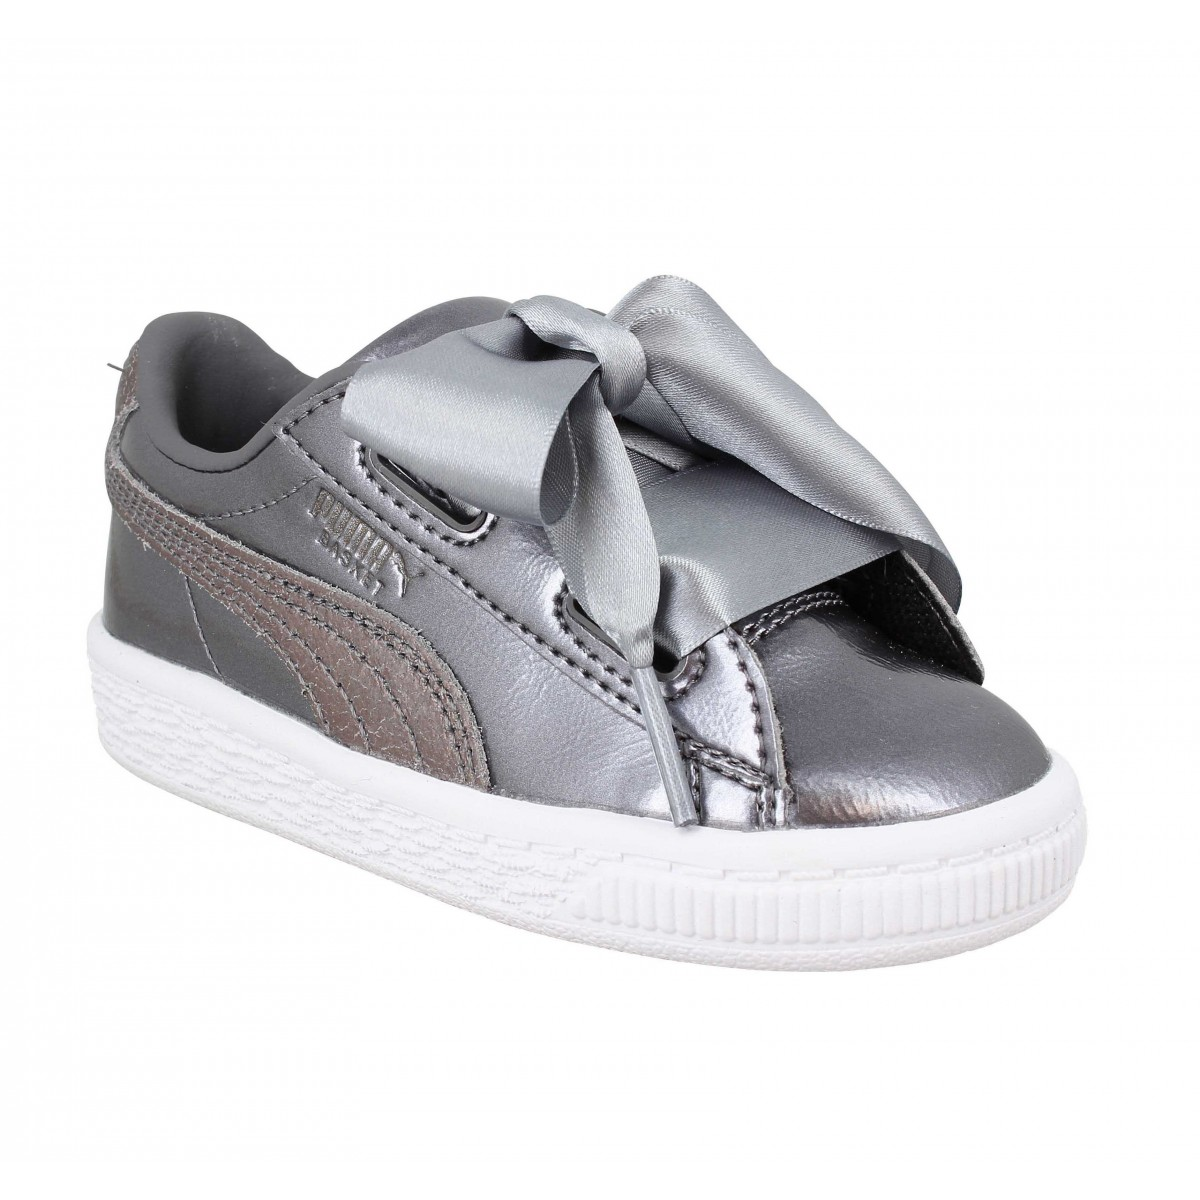 056e0e22e11 Puma basket heart lunar lux simili cuir enfant smoked enfants ...